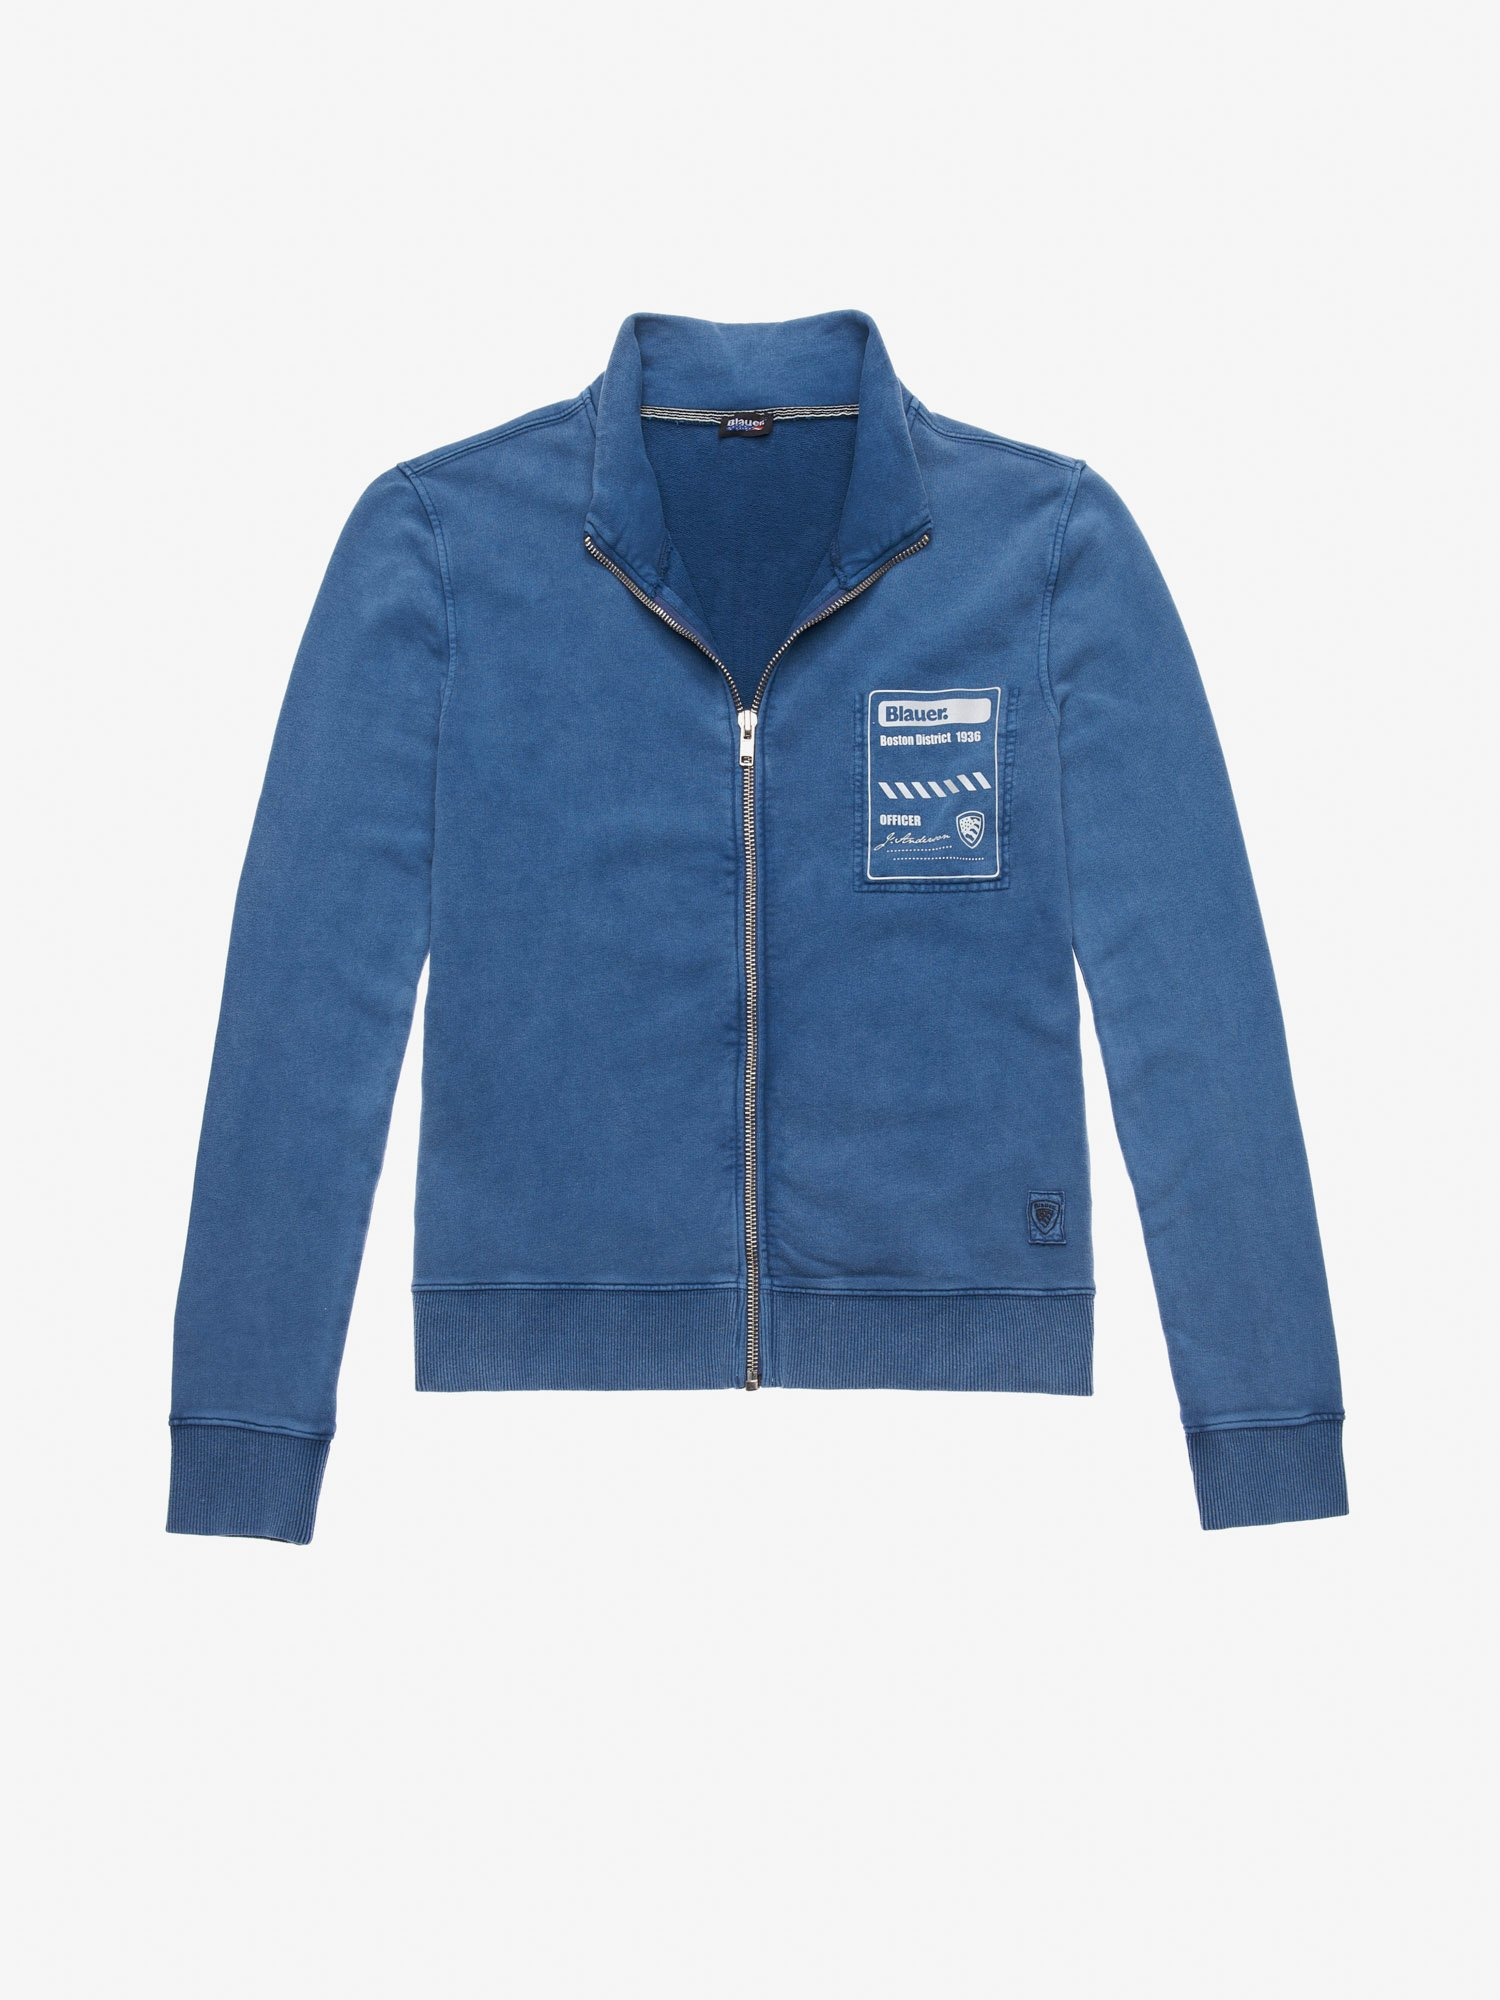 OPEN SWEATSHIRT WITH HIGH VISIBILITY PRINT - Blauer